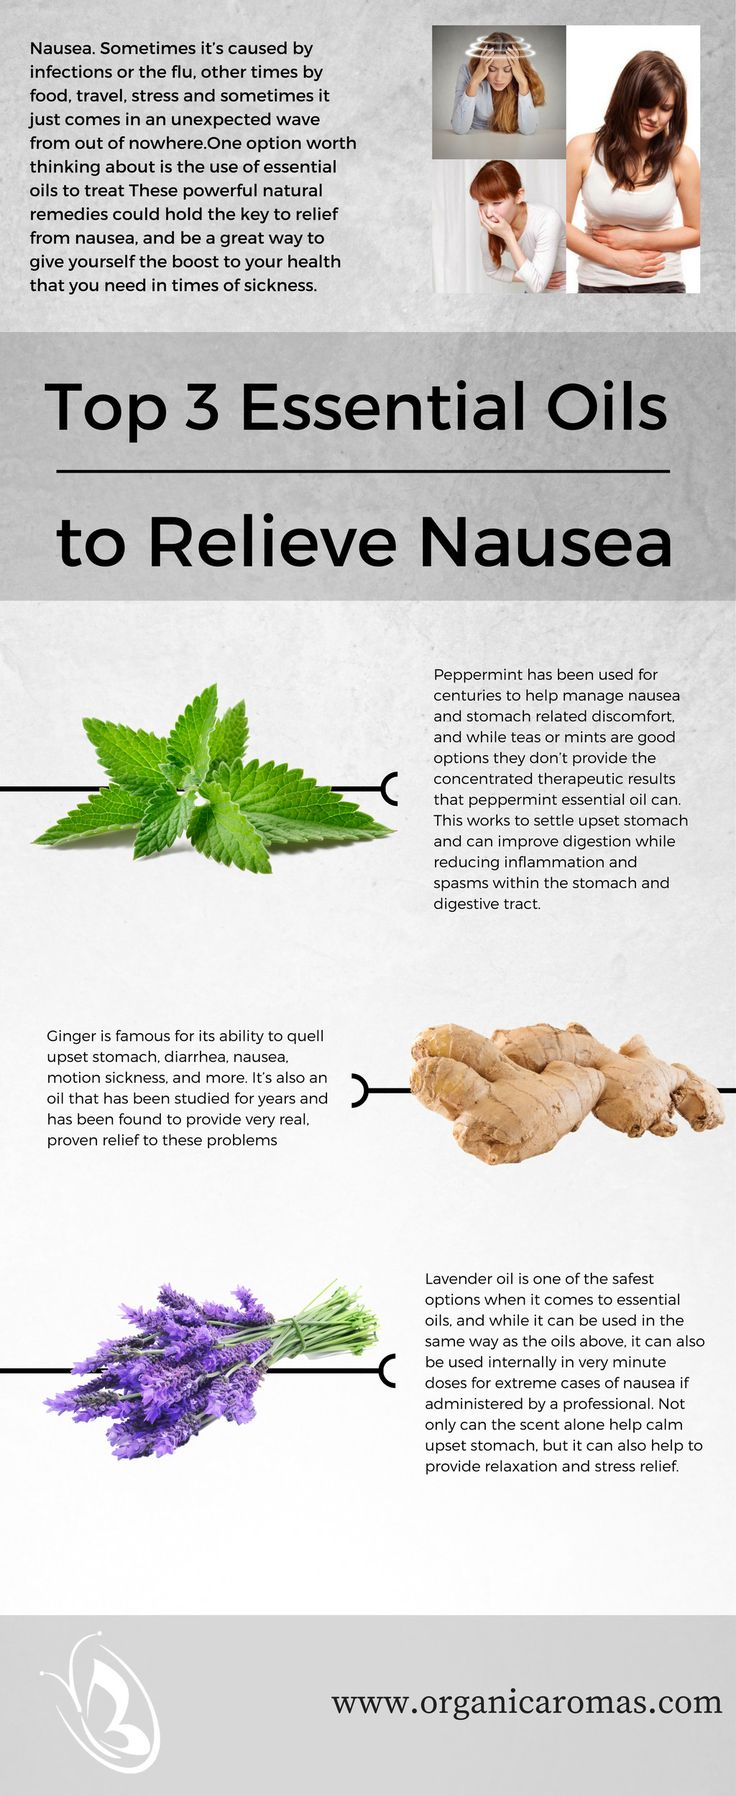 Top 3 Essential Oils to Relieve Nausea - #OrganicAromas Why should you trust in essential oils for nausea, exactly? There are plenty of reasons, and taking a look at some of the main ones should help you see why they're so important.